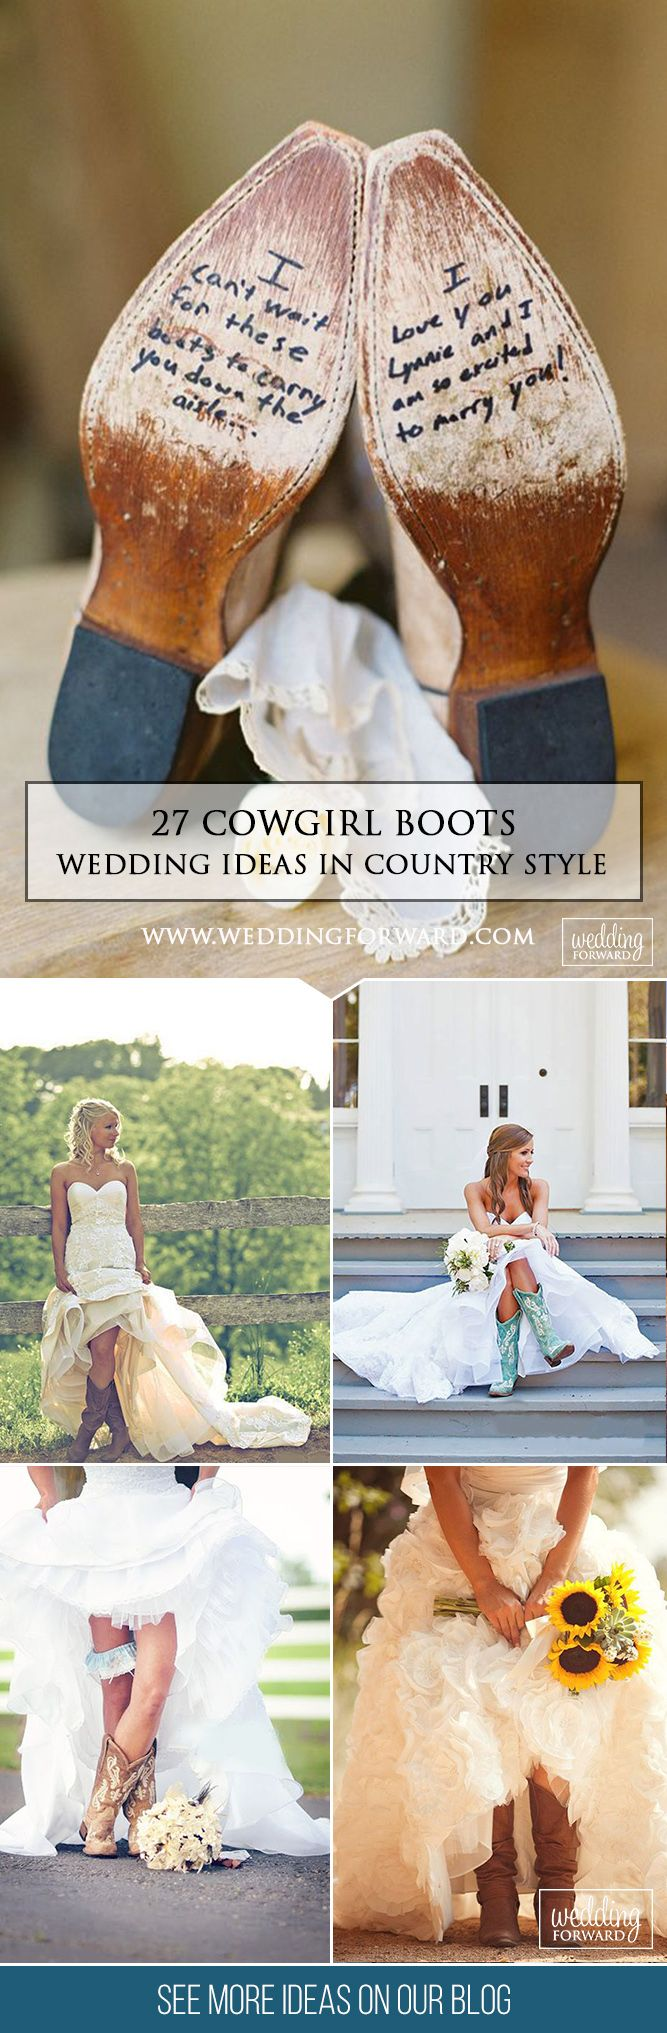 cowgirl boots wedding ideas for country weddings country